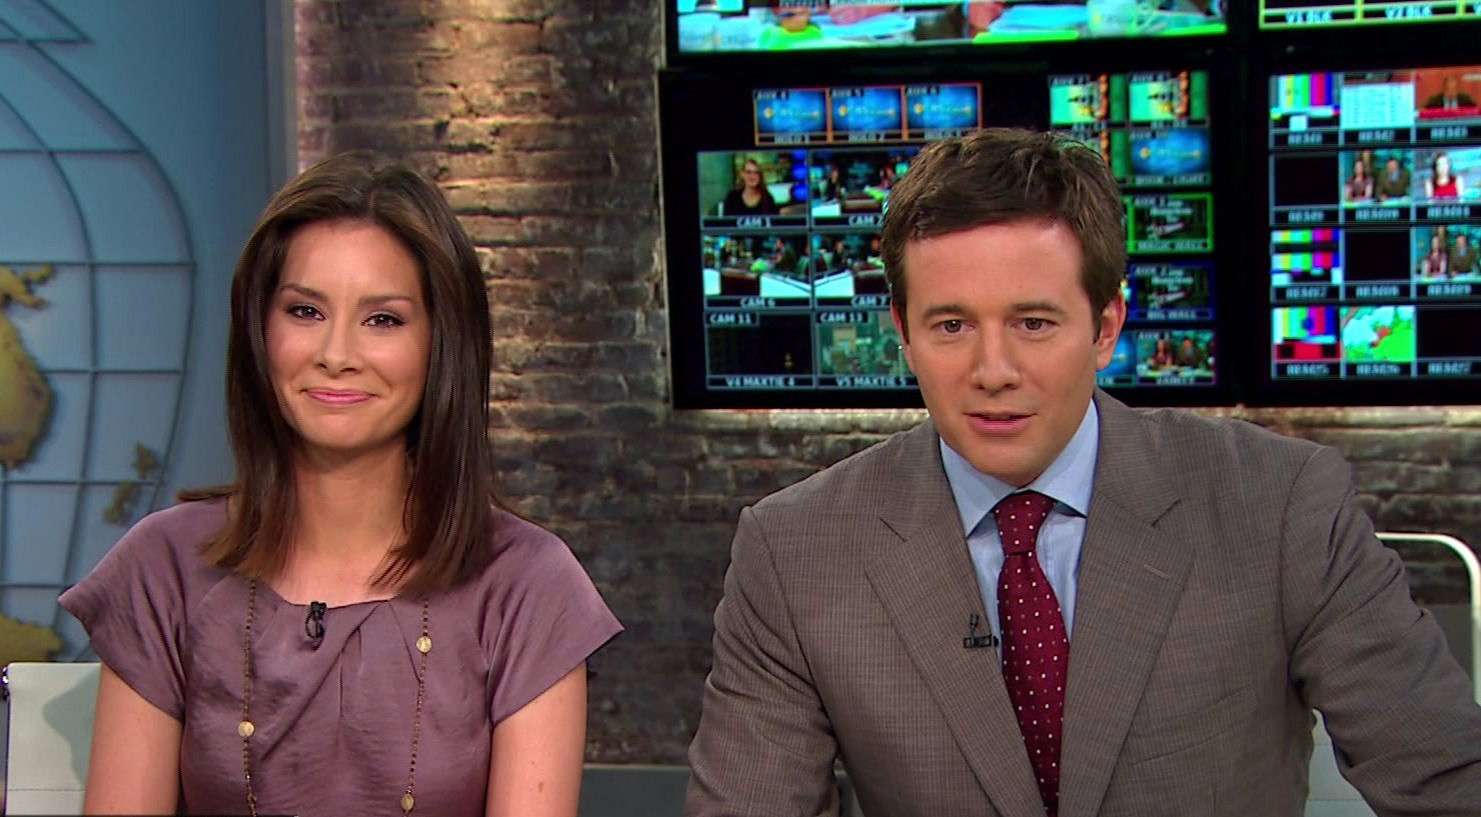 Rebecca Jarvis co-hosting the show 'CBS This Morning Saturday' with Jeff Glor. She served co-anchor of the show for about a year.